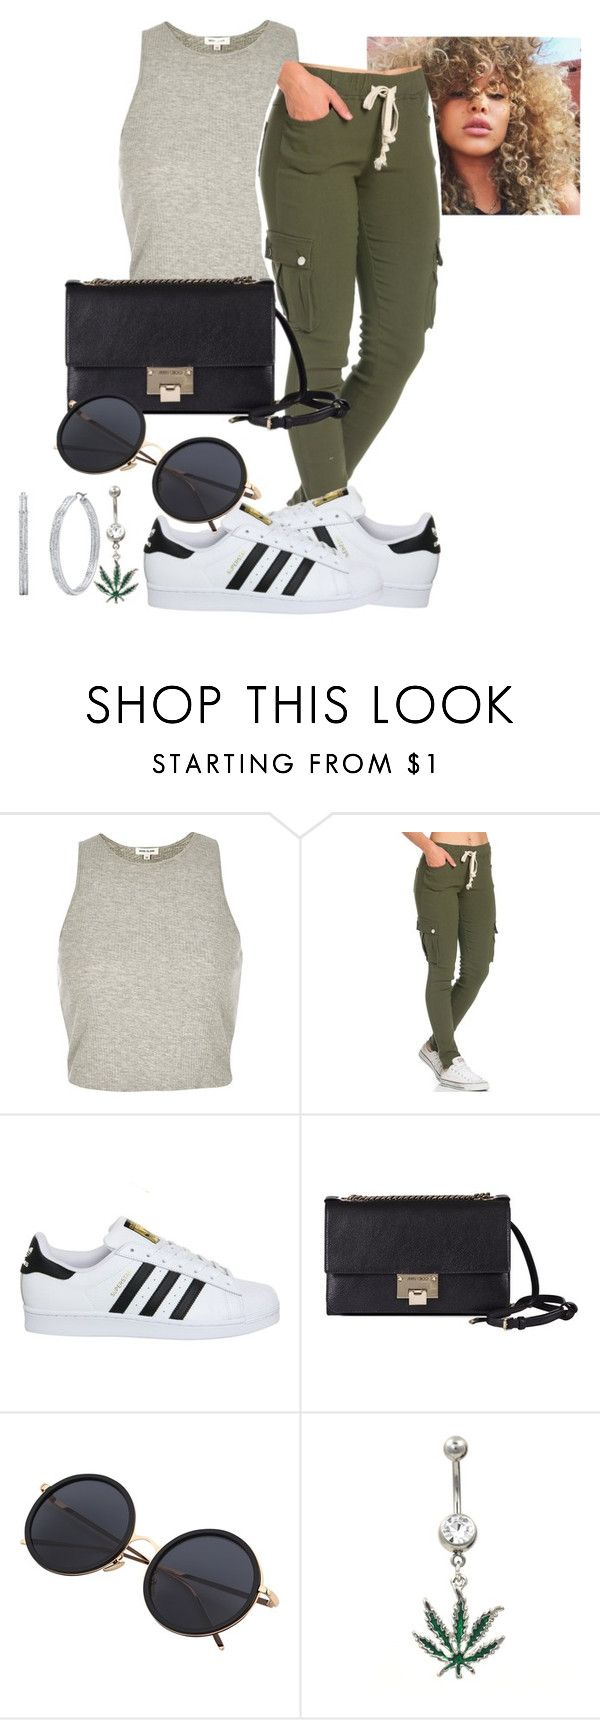 Untitled #6 by kyrawhite721 on Polyvore featuring River Island, adidas and Jimmy Choo